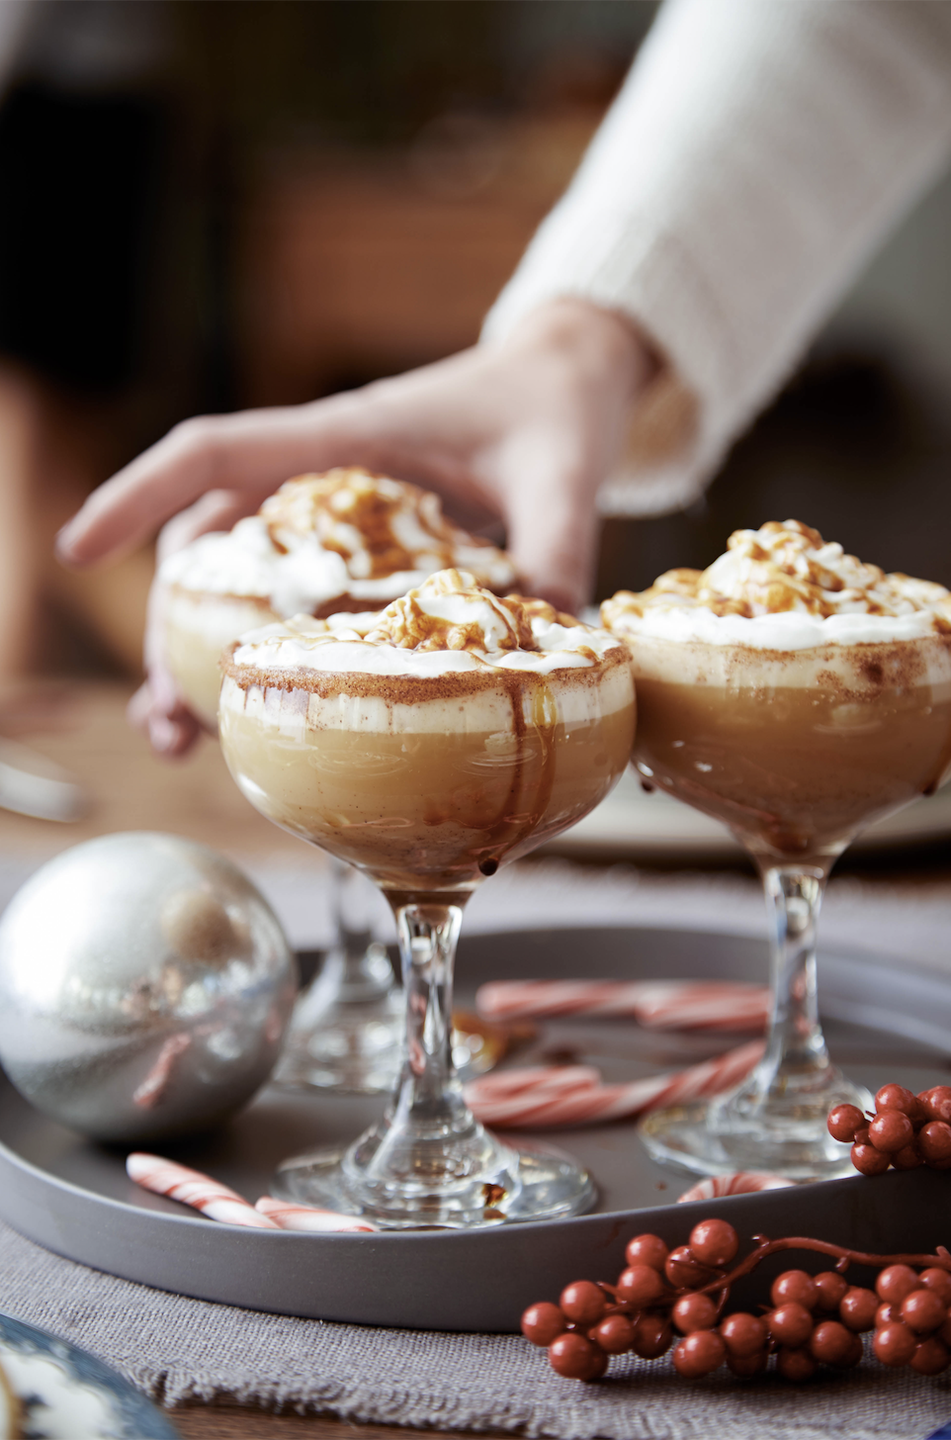 """<p>This boozy, festive drink makes for an easy dessert.</p><p>Get the recipe from <a href=""""https://www.delish.com/holiday-recipes/christmas/recipes/a45175/gingerbread-eggnog-white-russian-recipe/"""" rel=""""nofollow noopener"""" target=""""_blank"""" data-ylk=""""slk:Delish"""" class=""""link rapid-noclick-resp"""">Delish</a>.</p>"""